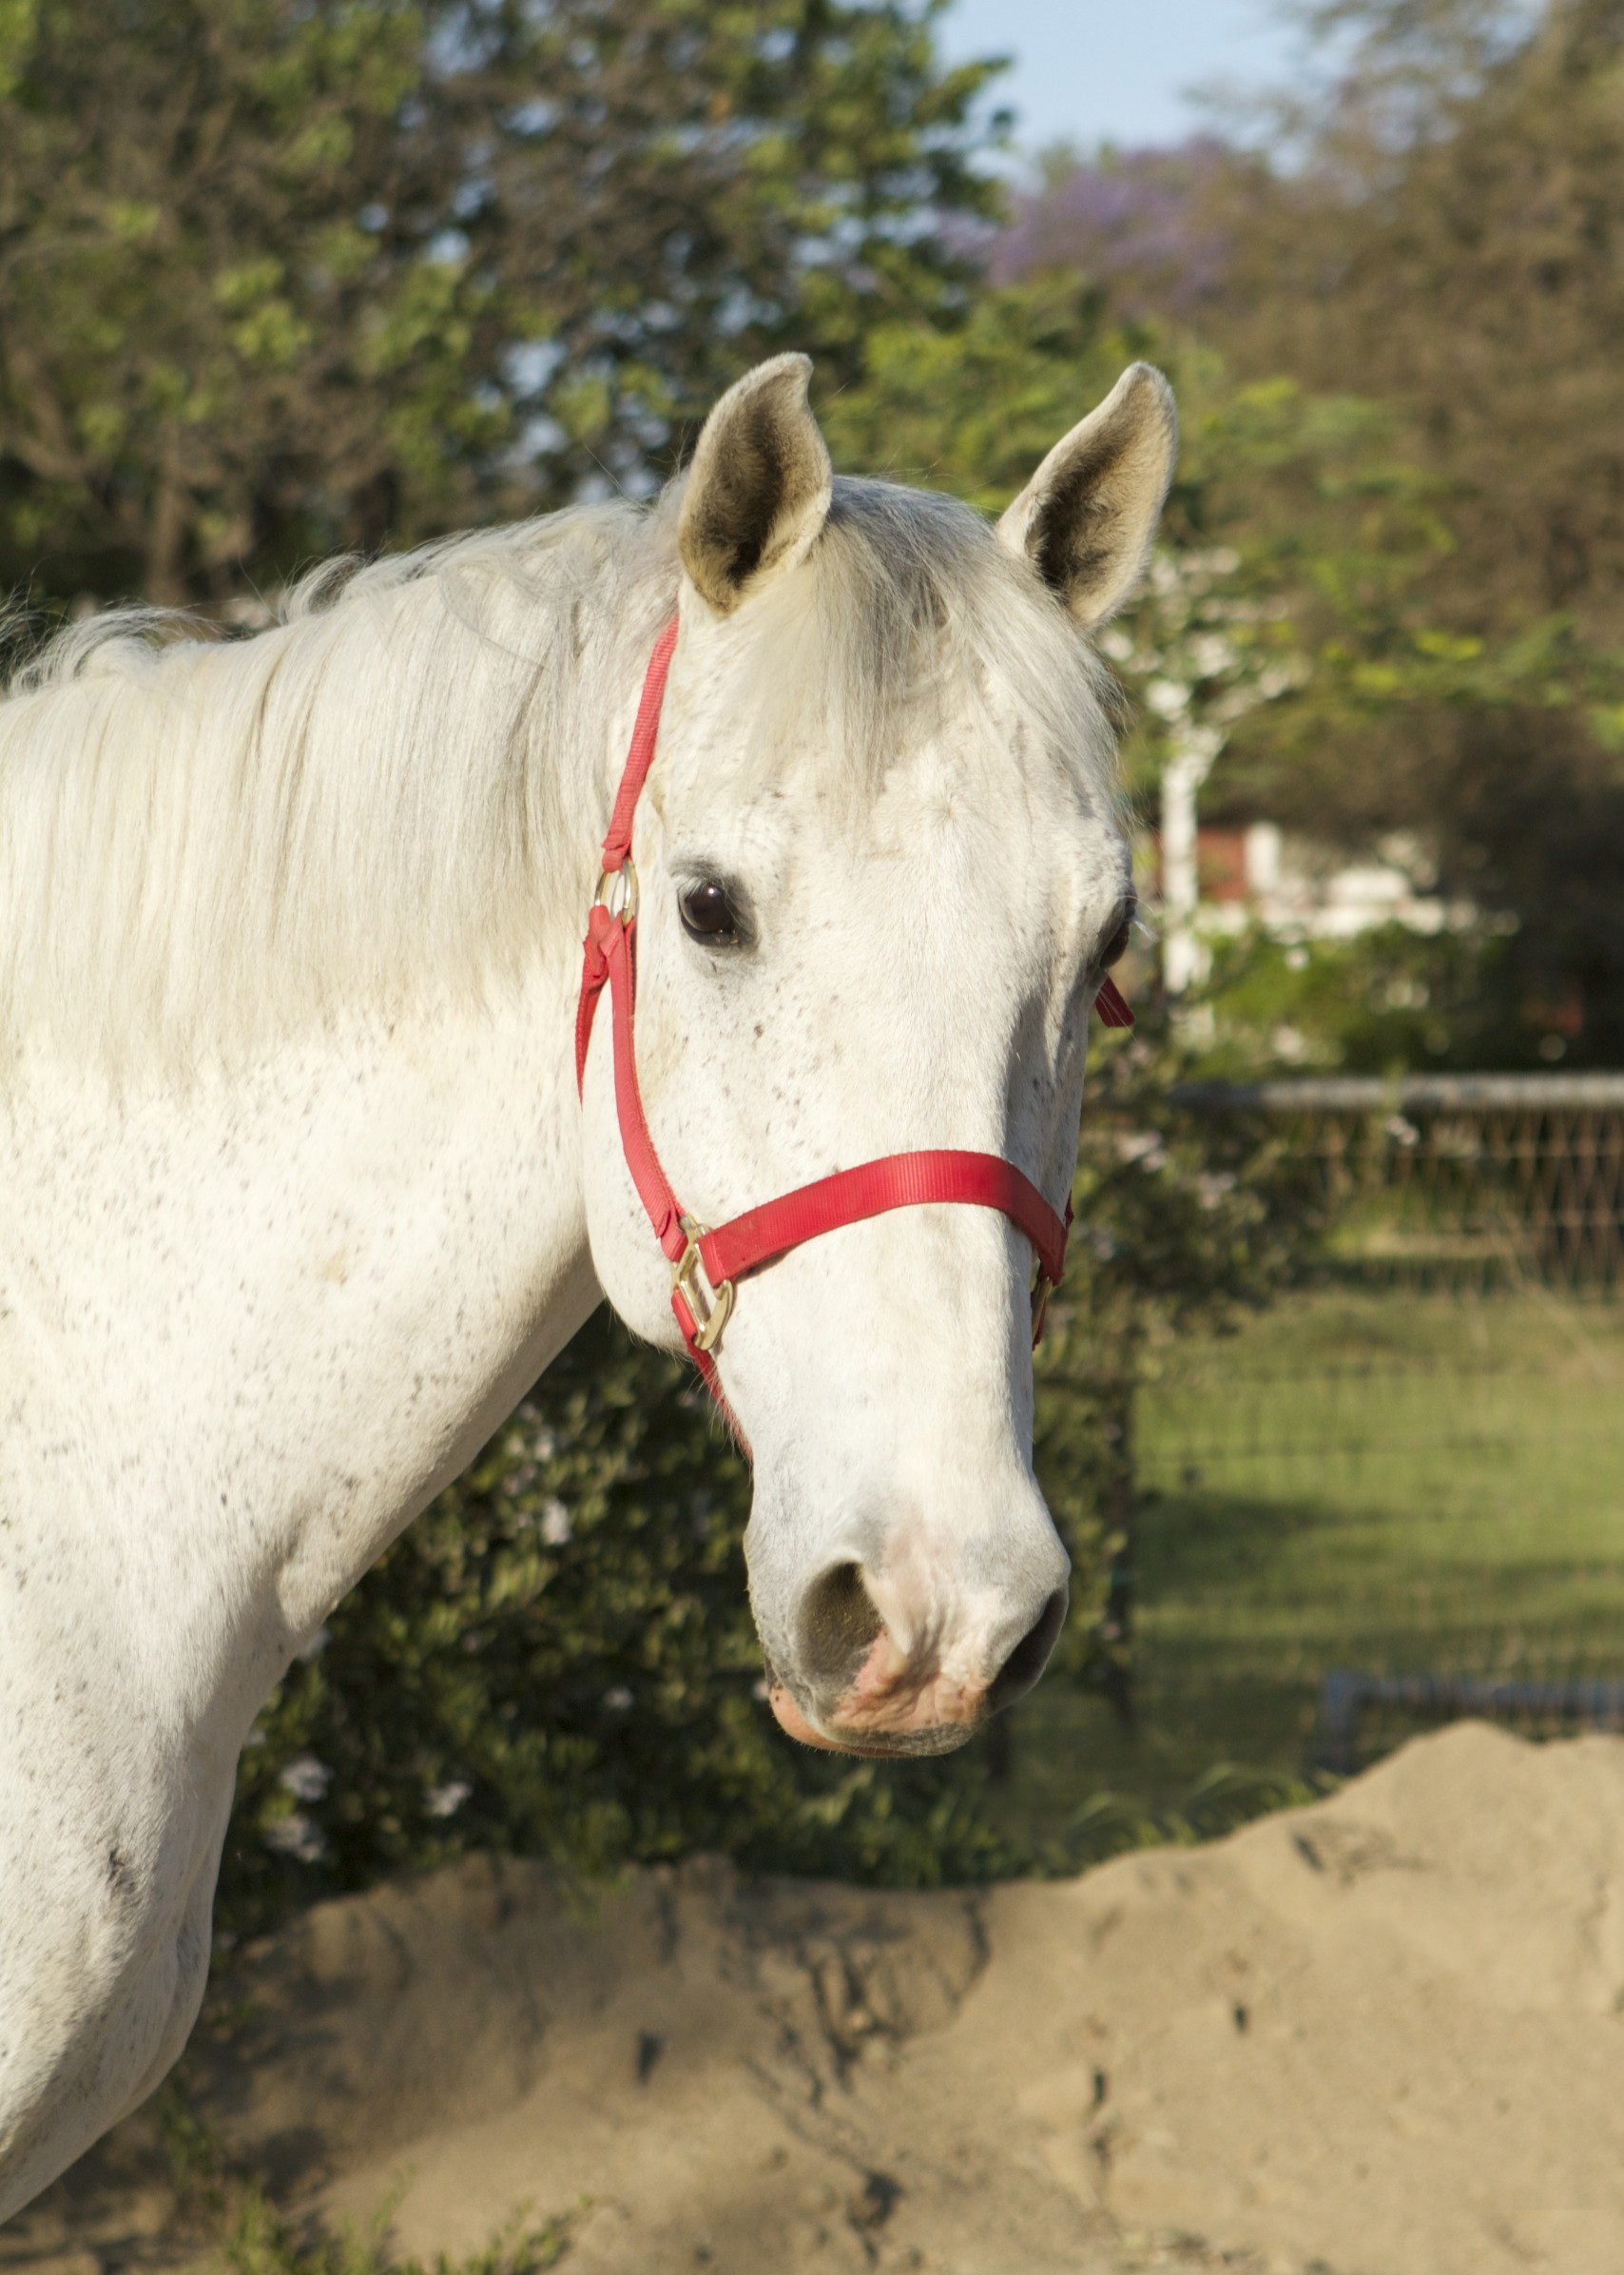 Ready for Adoption – Red Bucket Equine Rescue